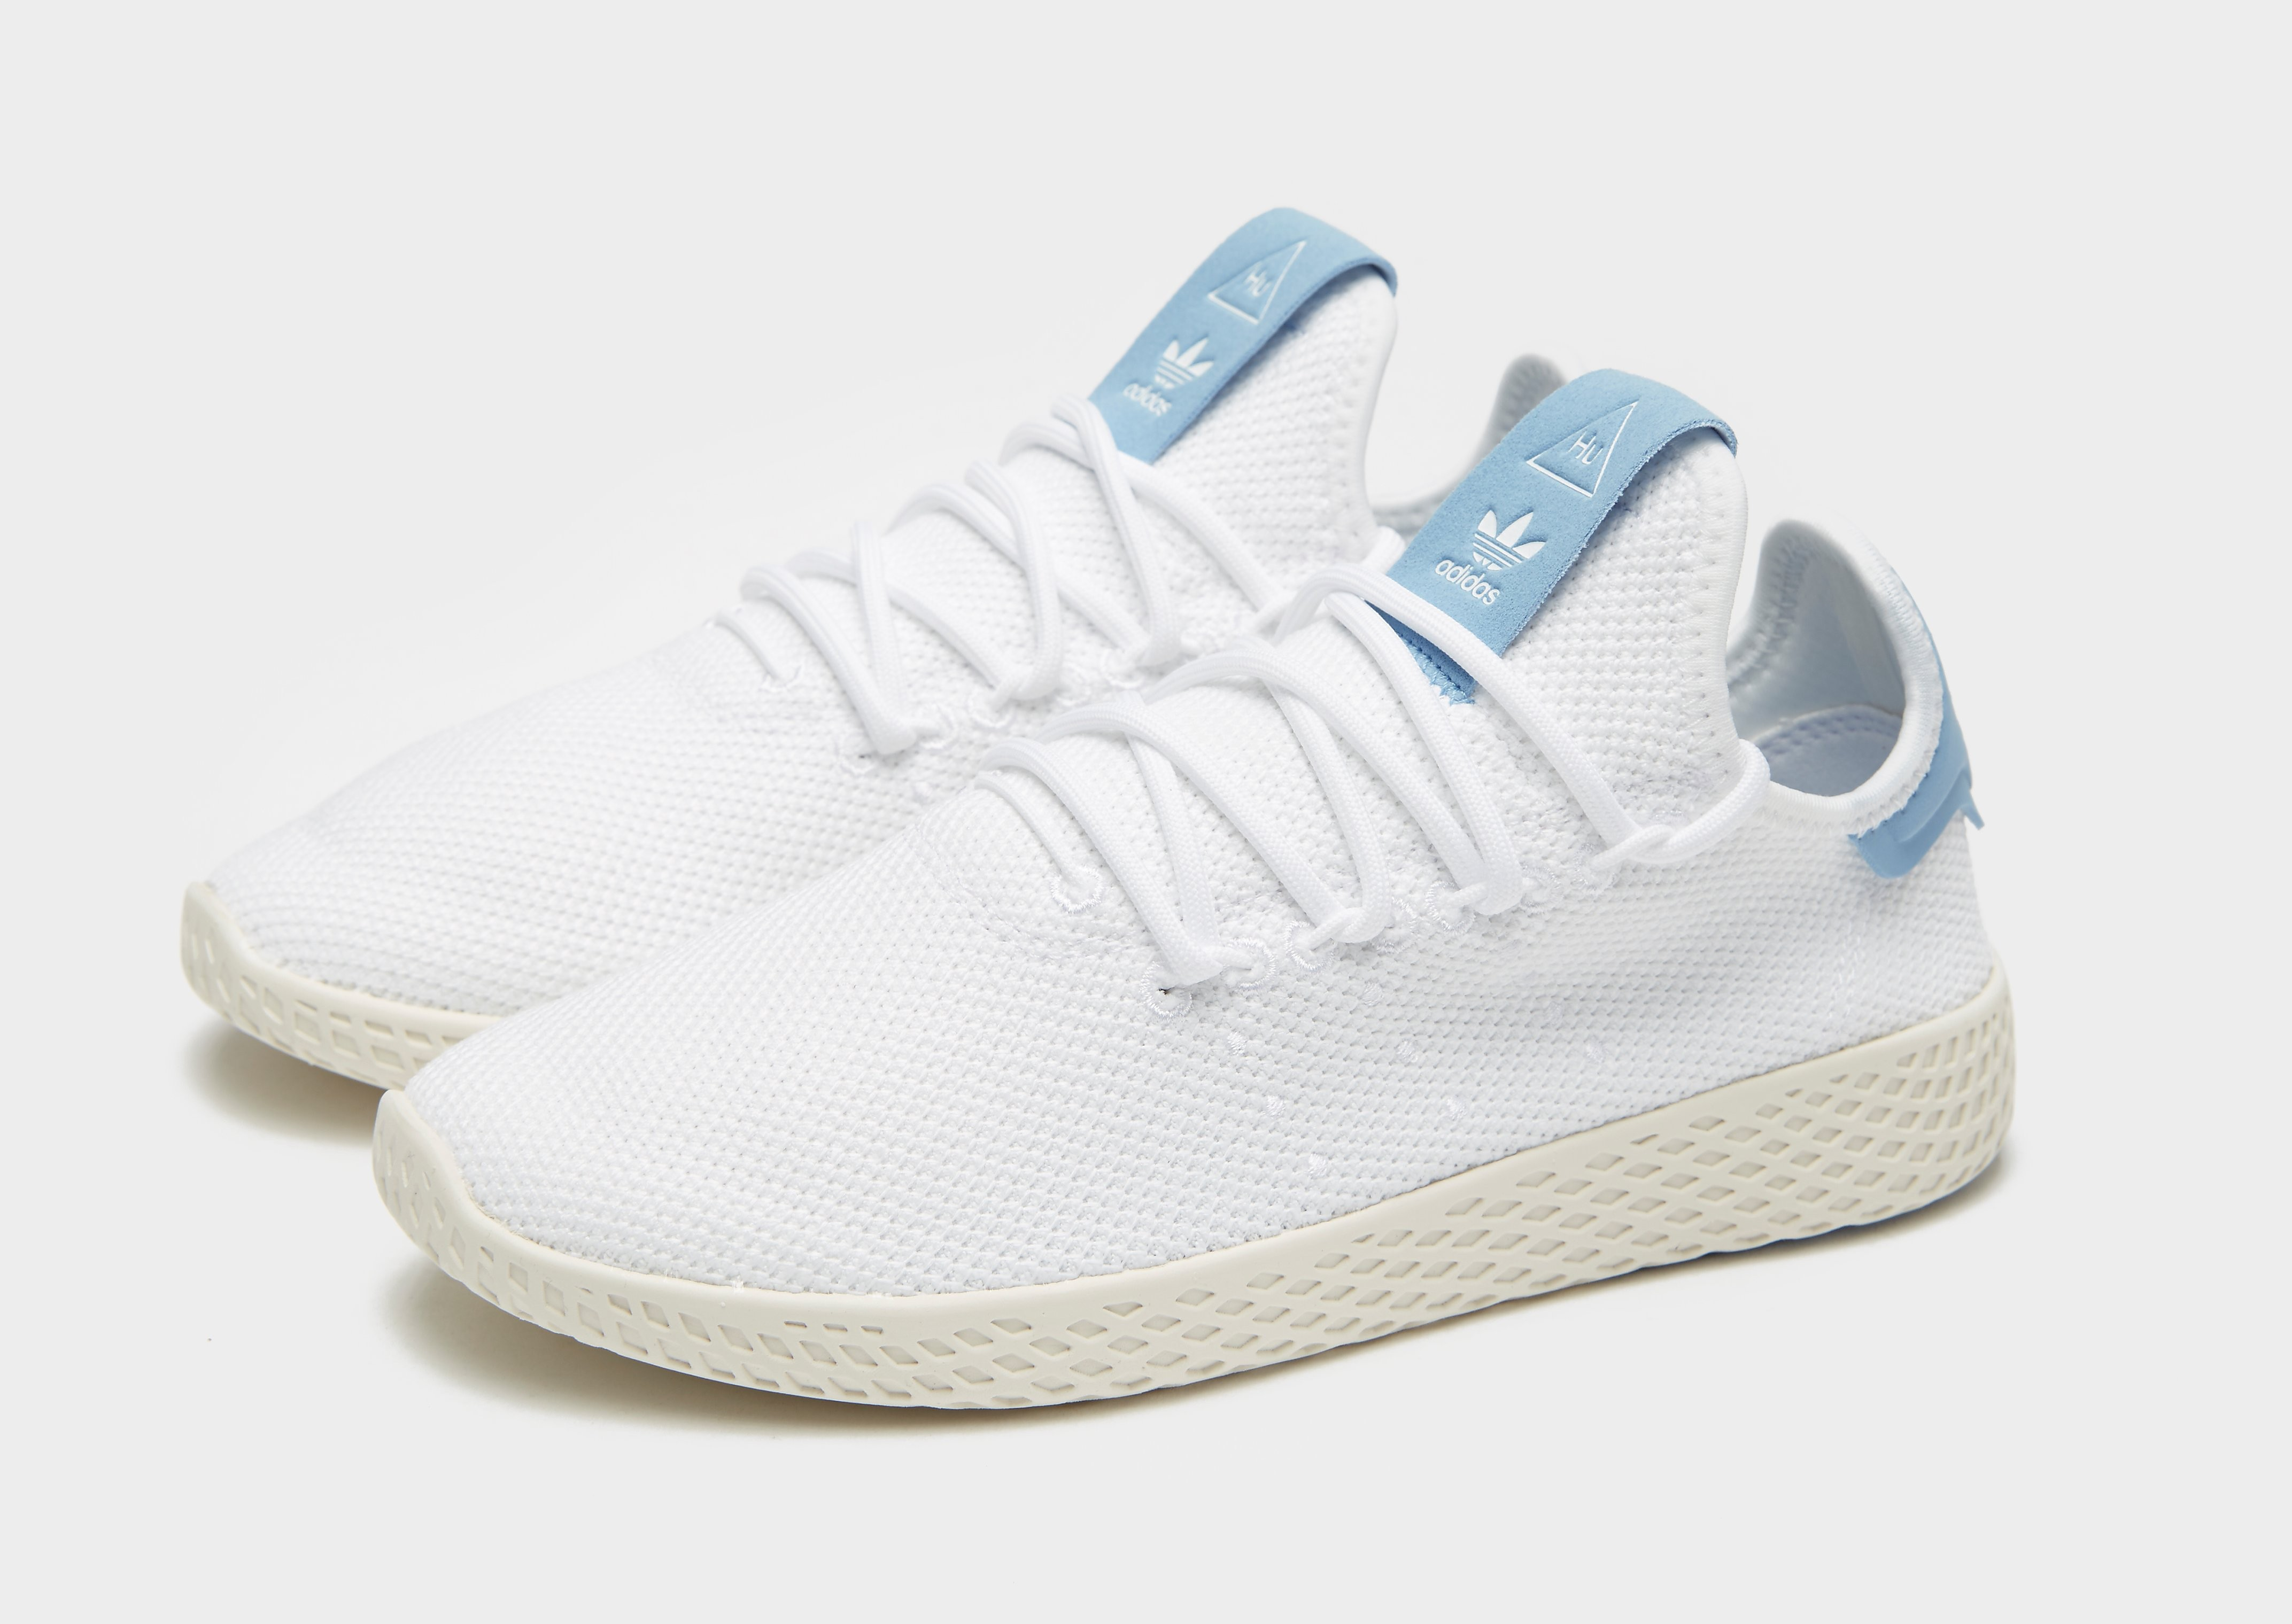 adidas Originals Pharrell Williams Tennis Hu Junior